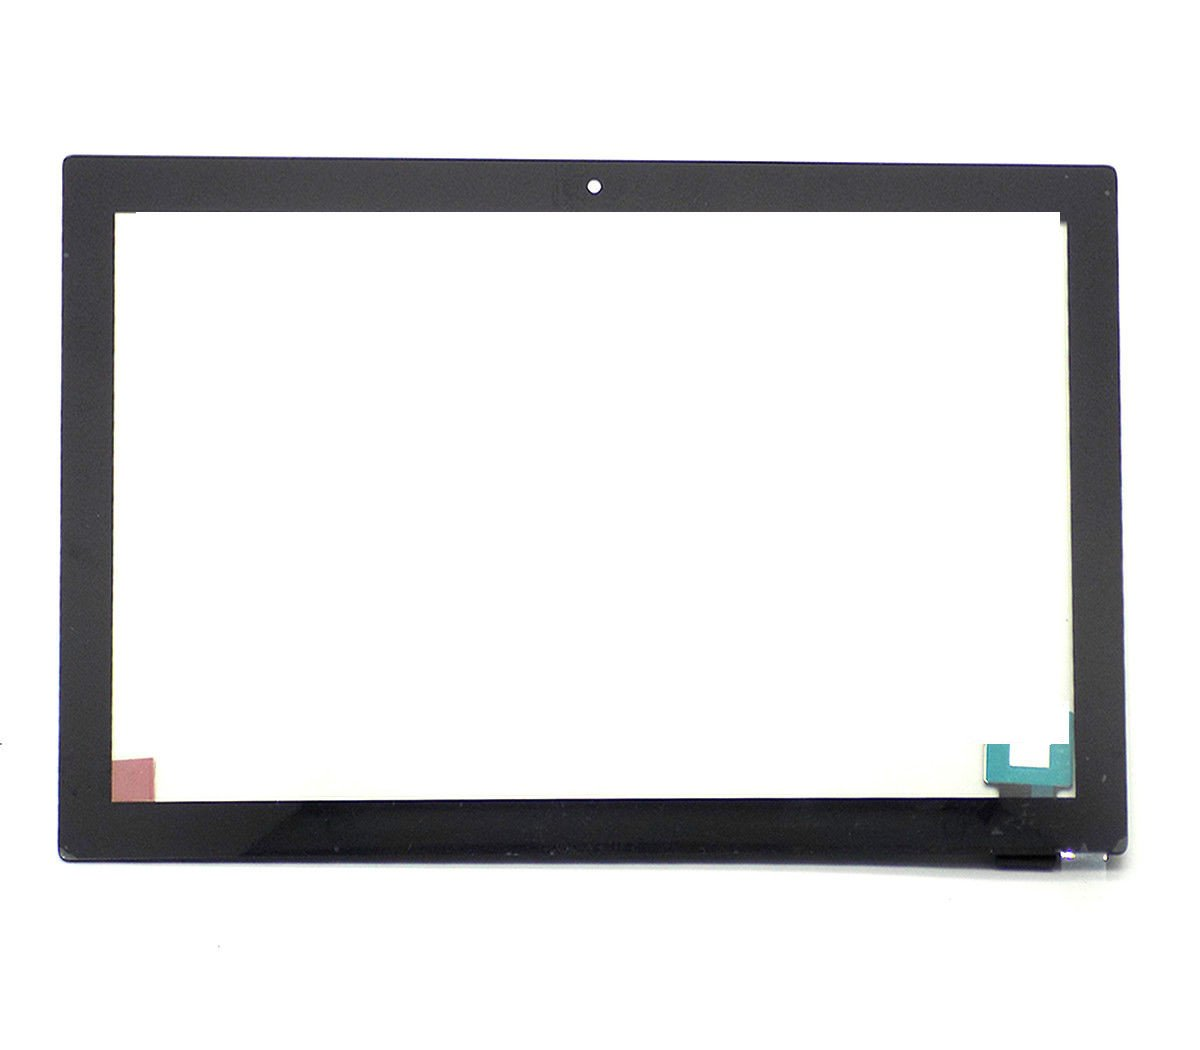 Touch Screen Panel Sensor Digitizer Replacement for For Lenovo 10 Inch TAB4 10 X 304 X304N X304F TB-X304F TB-X304N TB-X304 Black by Mustpoint